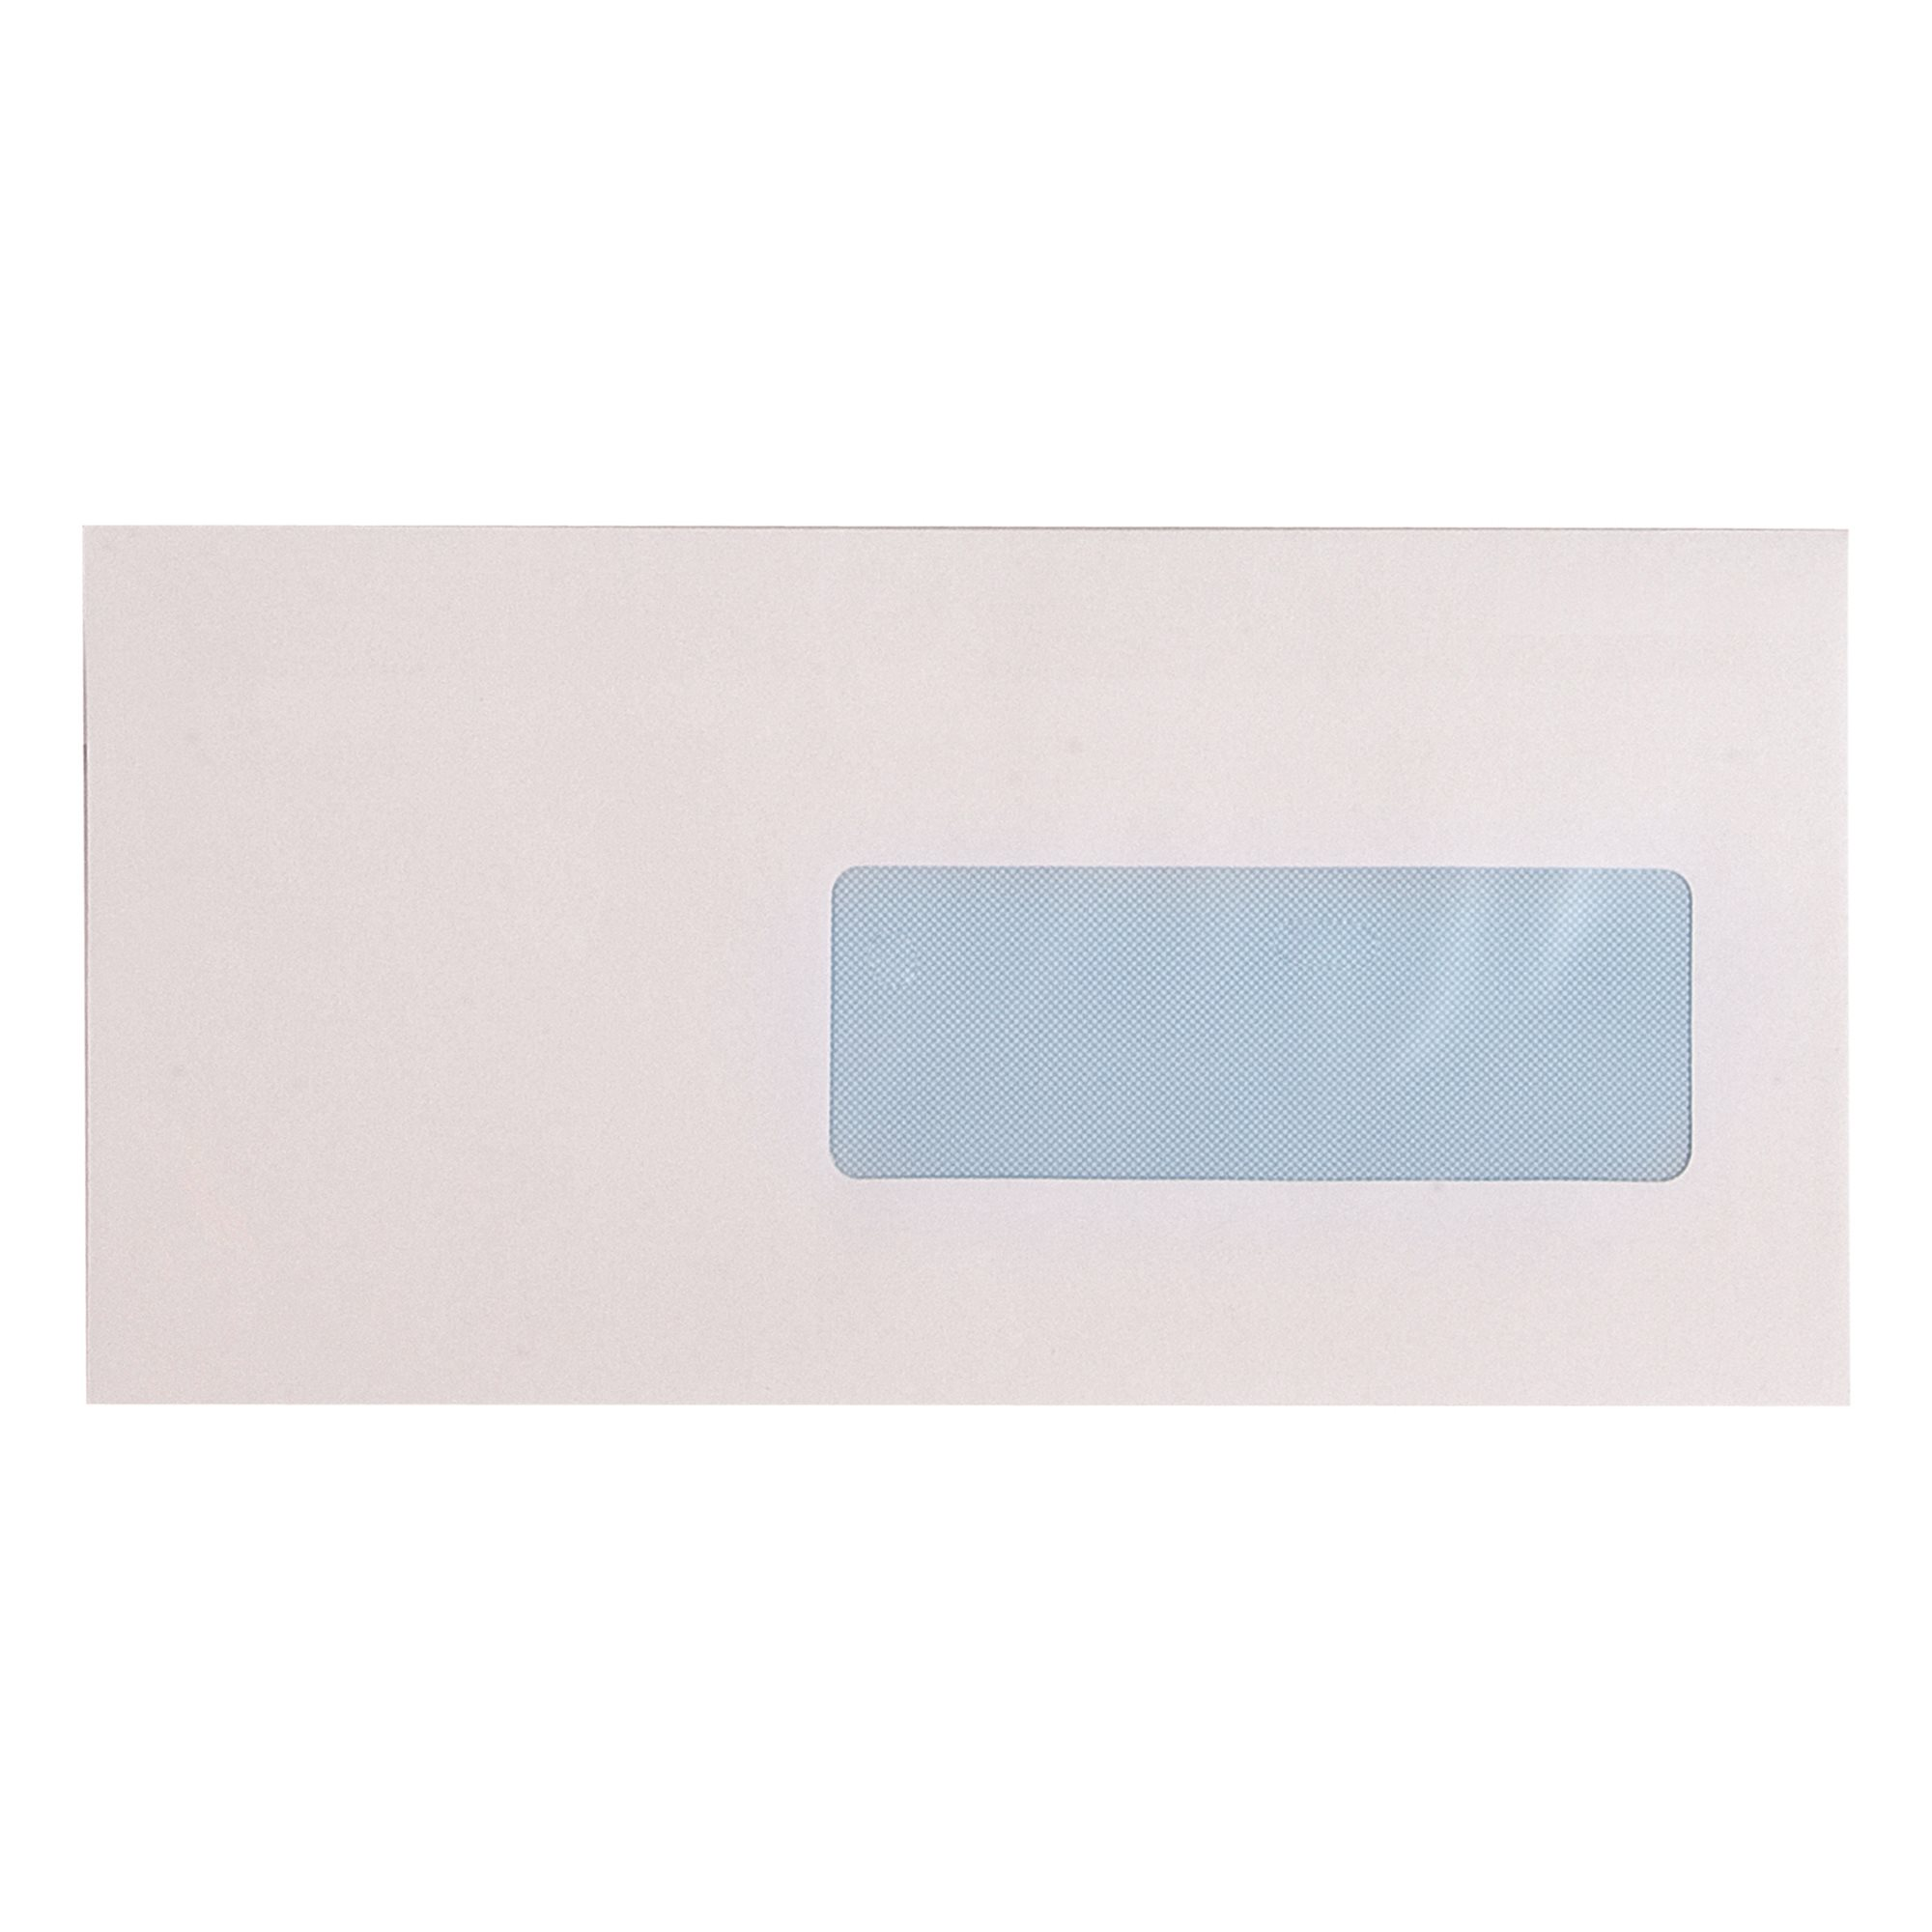 Box of 500 envelopes 114 x 229 mm - with window 40 x 110 mm - self-adhesive flap with protective strip